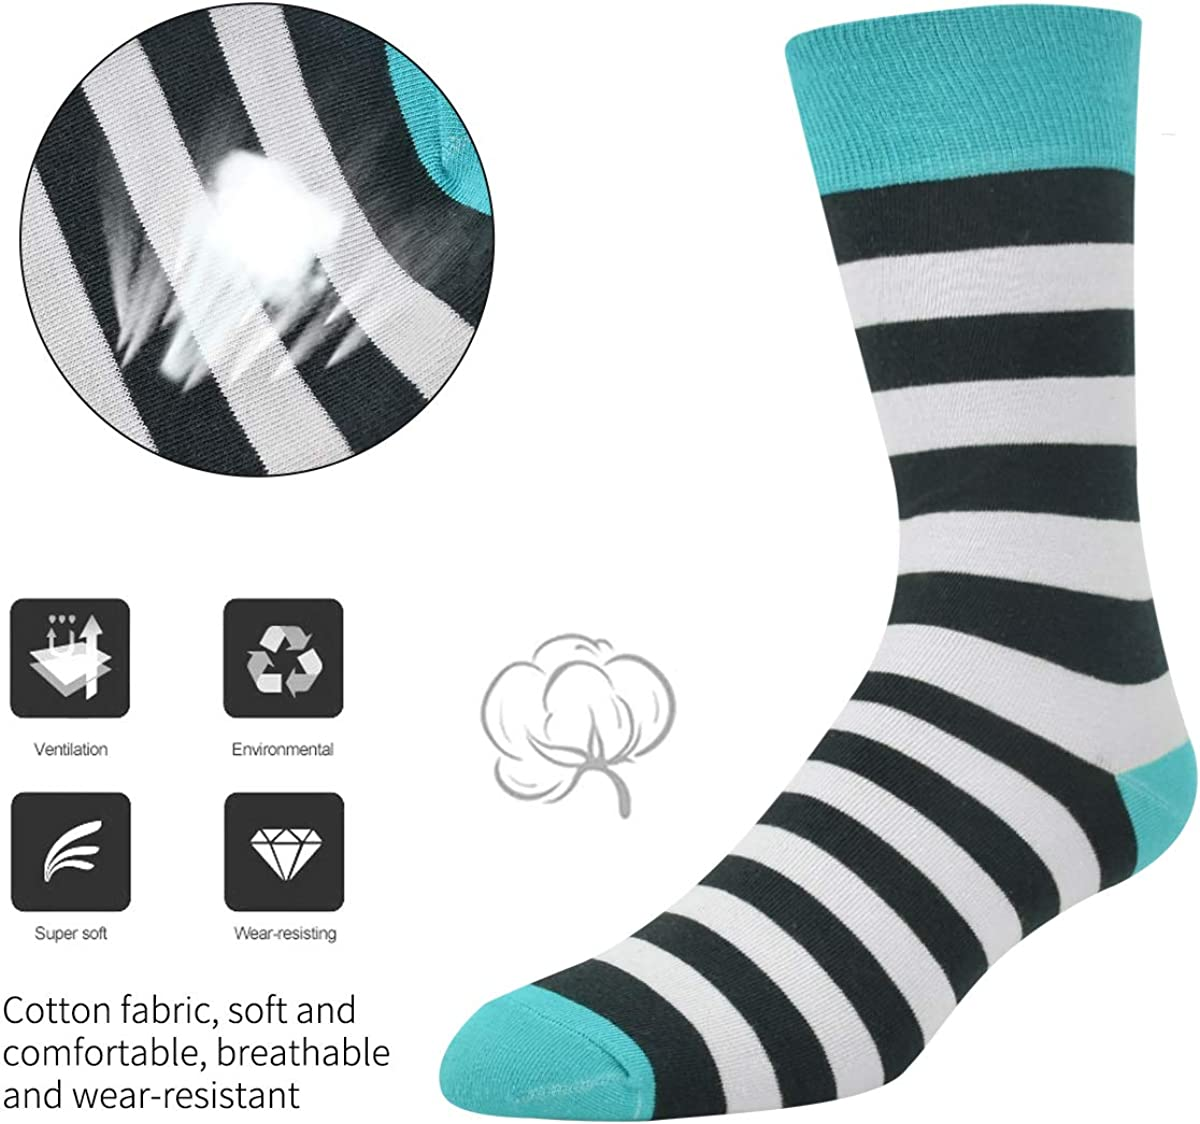 Seafirst Mens Dress Socks Colorful Stripe Crew Socks Combed Cotton Socks for Business or Casual Wear